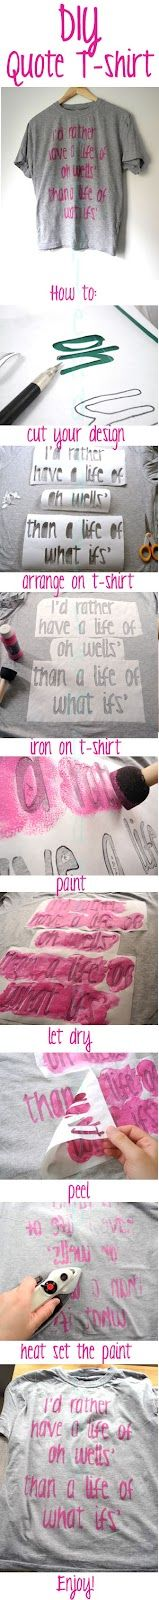 i always do this! i have a lot of t-shirts i made myself! Quotes and Pics!    But my tip is: if you use a thicker kind of paper, like couche paper, the paint won´t spread and you can make another coat of paint and it won´t rip!